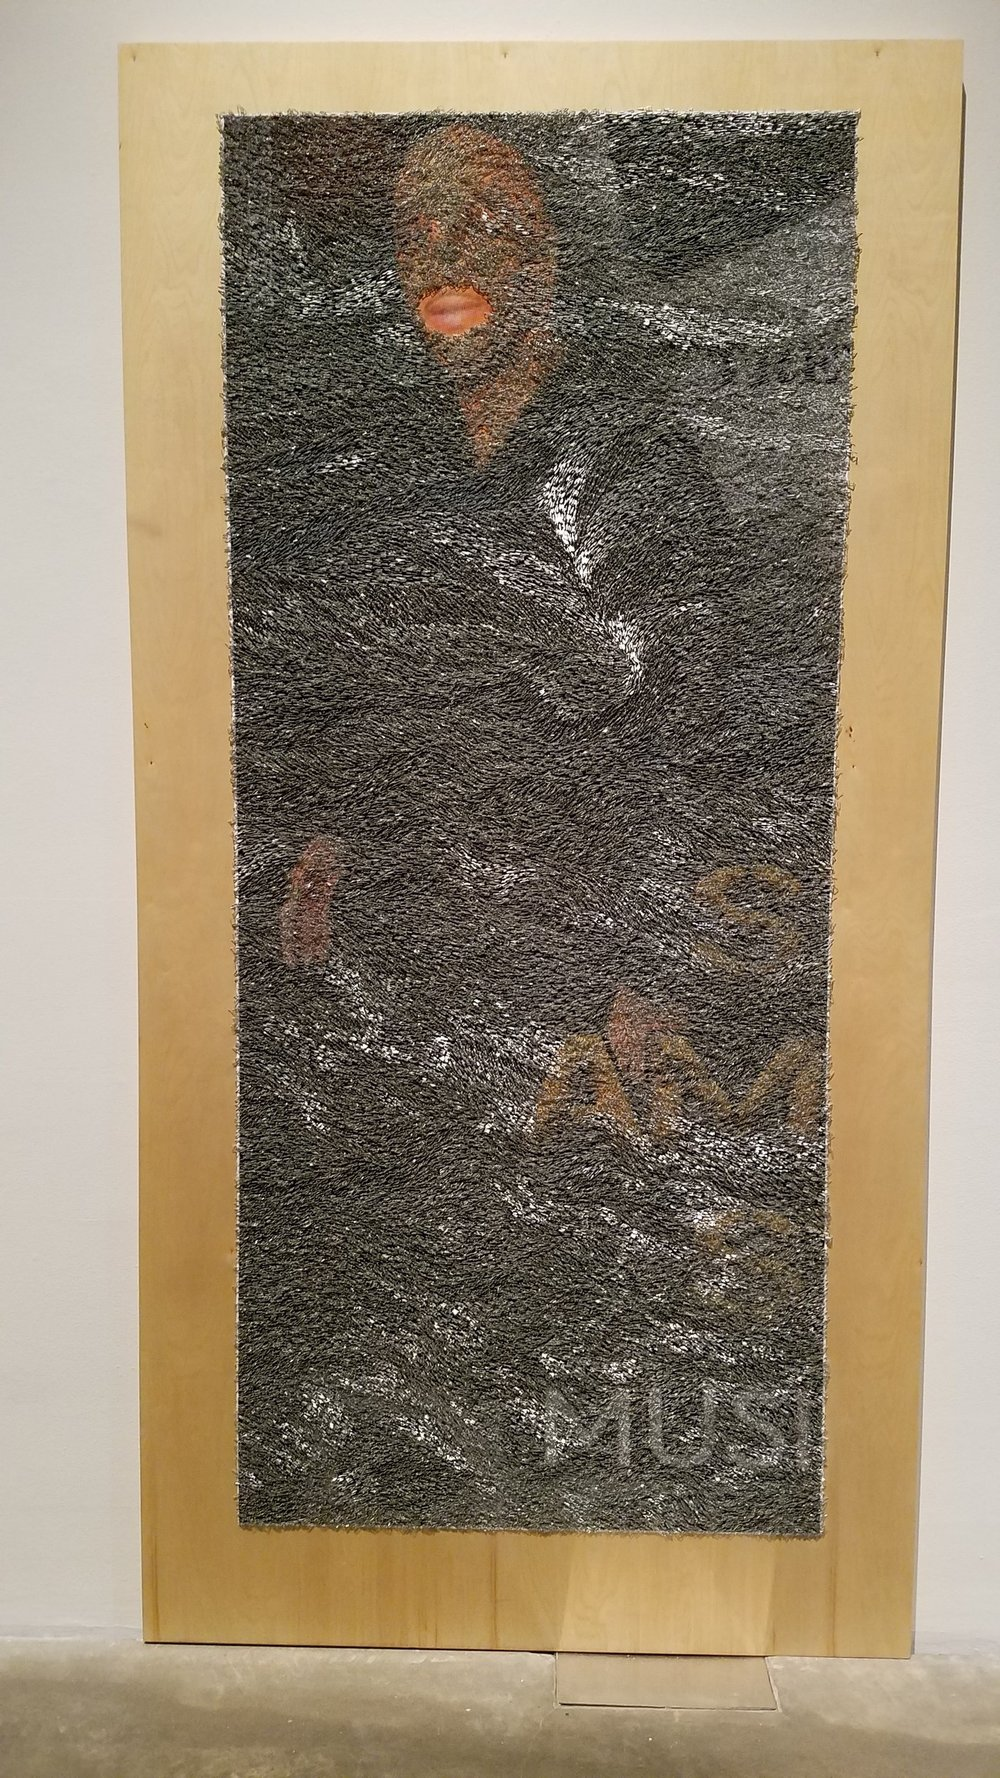 Wilmer Wilson IV (b. 1989, Richmond, VA),  Afr , 2017, Staples & Pigment on Wood,   Courtesy of the artist and CONNERSMITH, Washington D.C.